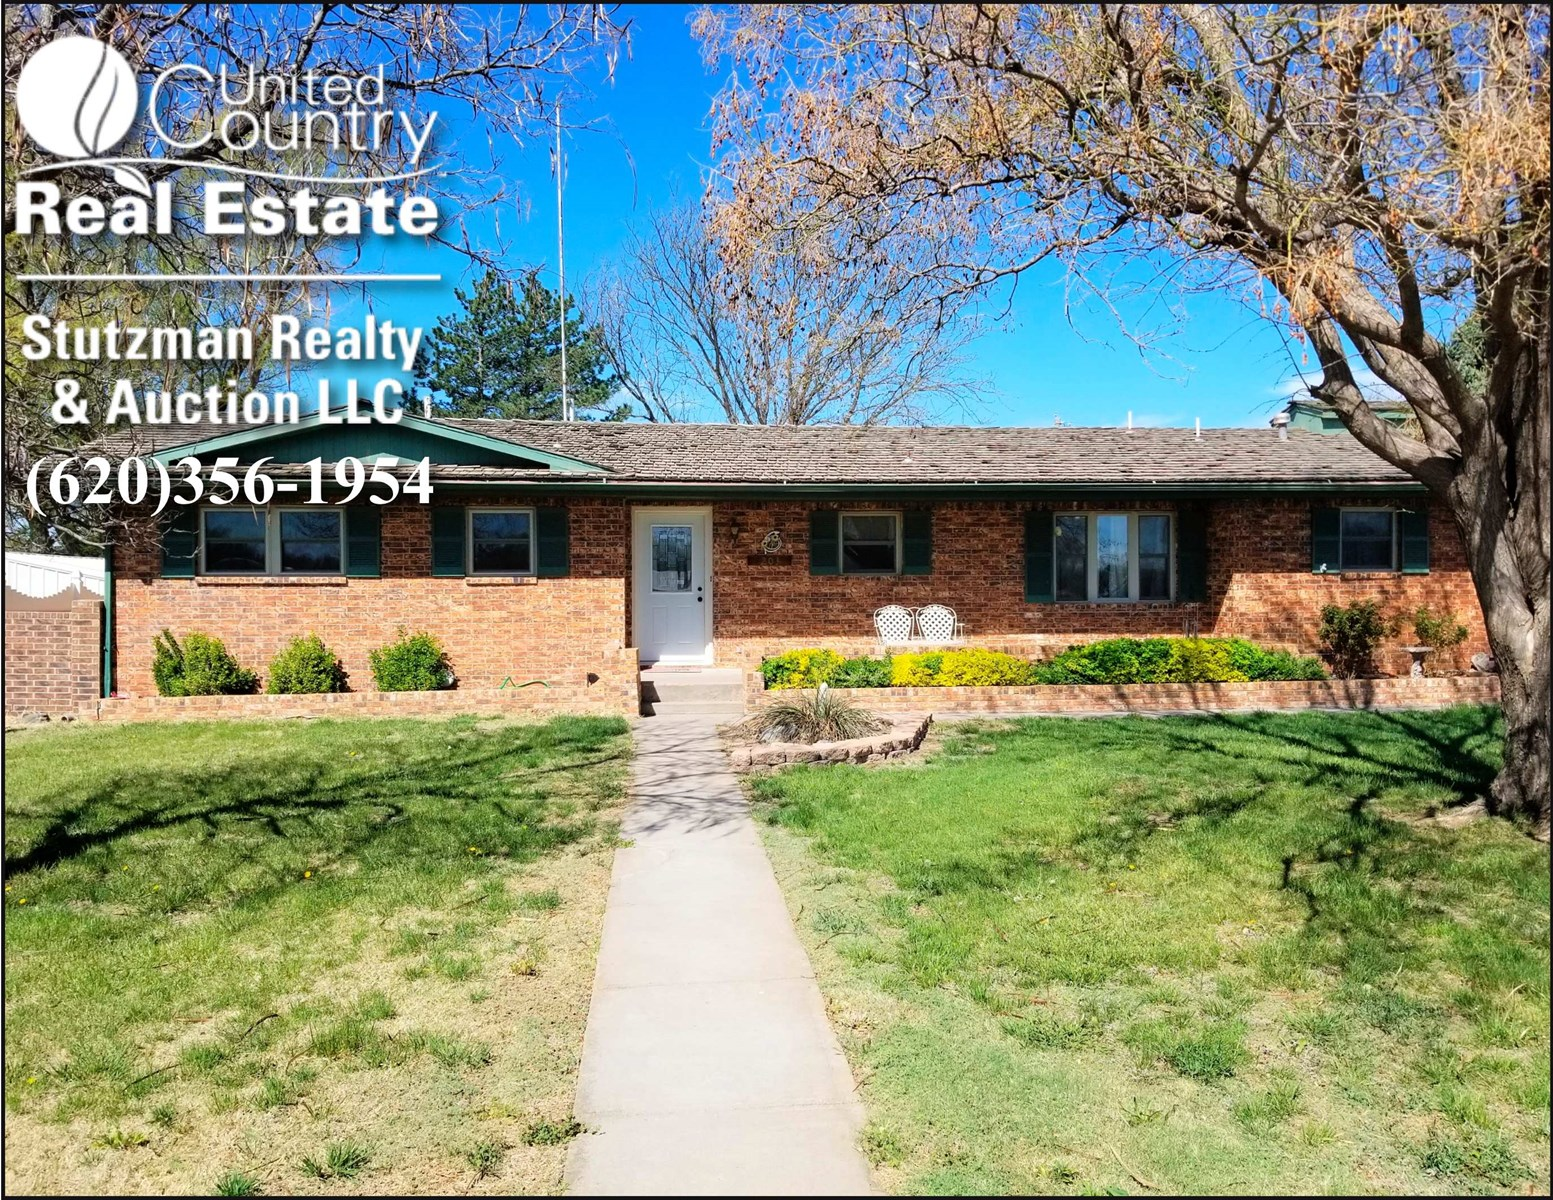 BEAUTIFUL FOUR BEDROOM HOME FOR SALE IN ULYSSES, KANSAS